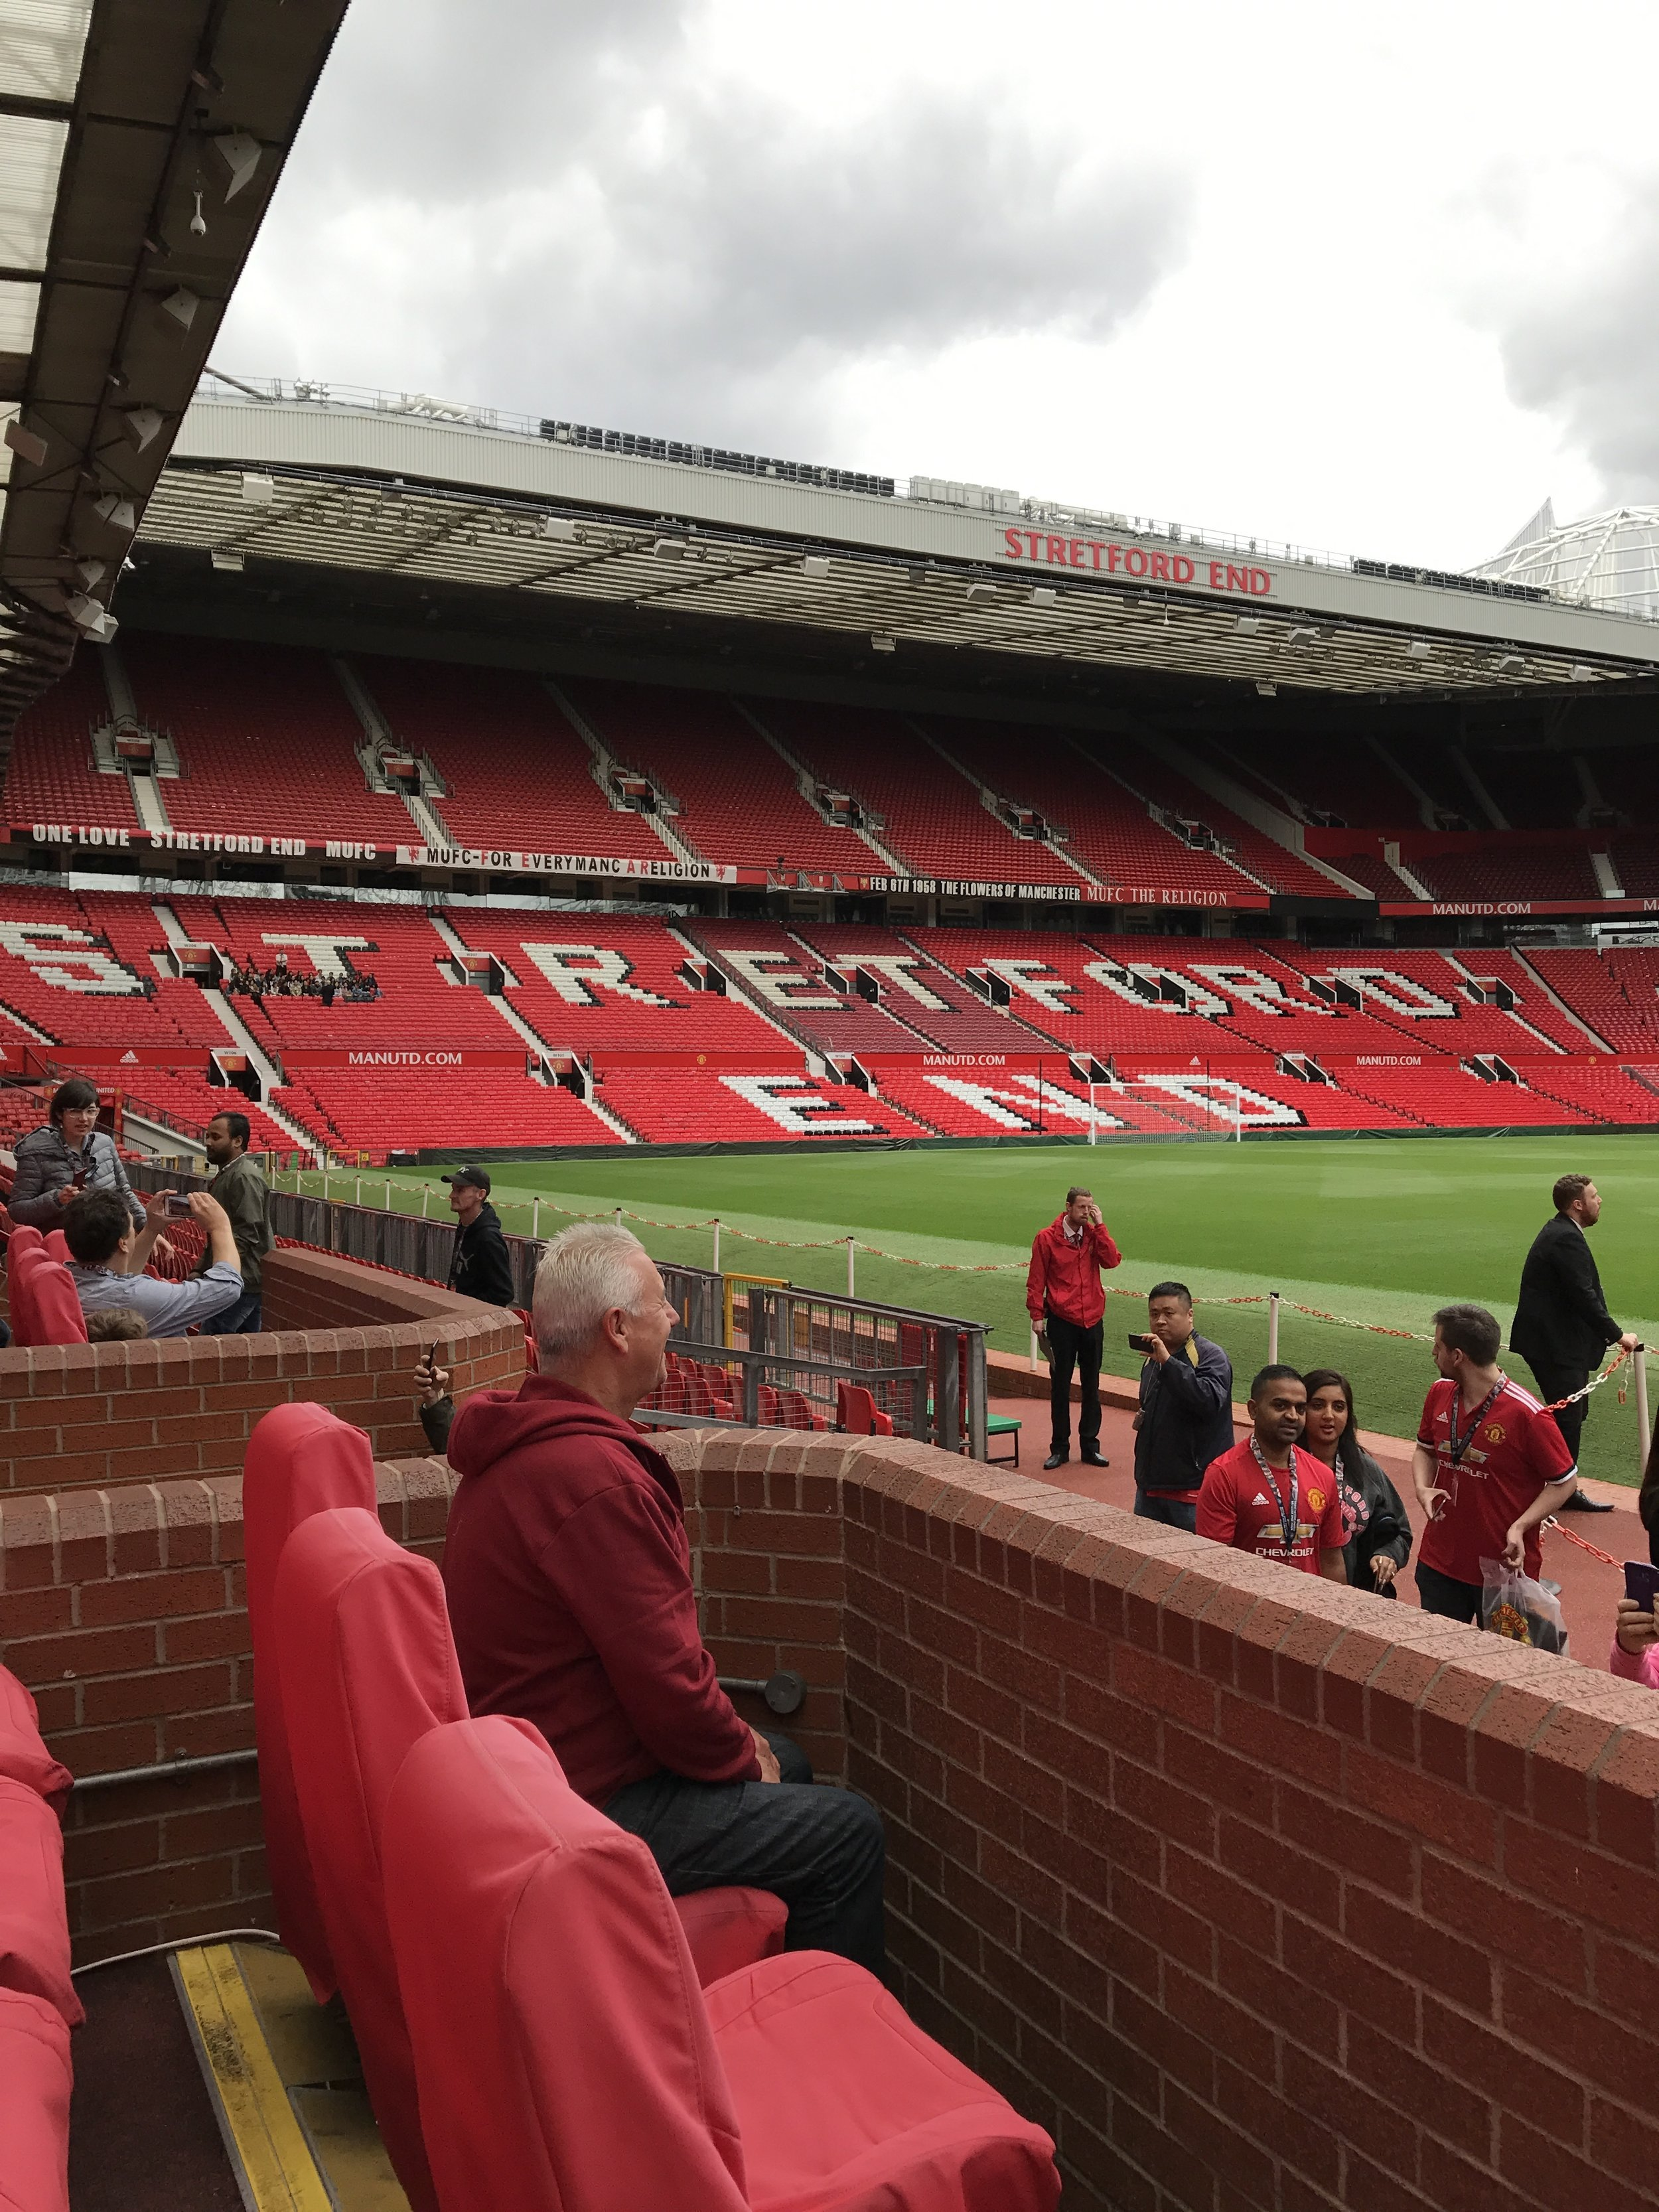 One day, I'll be raising hell with my fellow MU fans in Stretford End